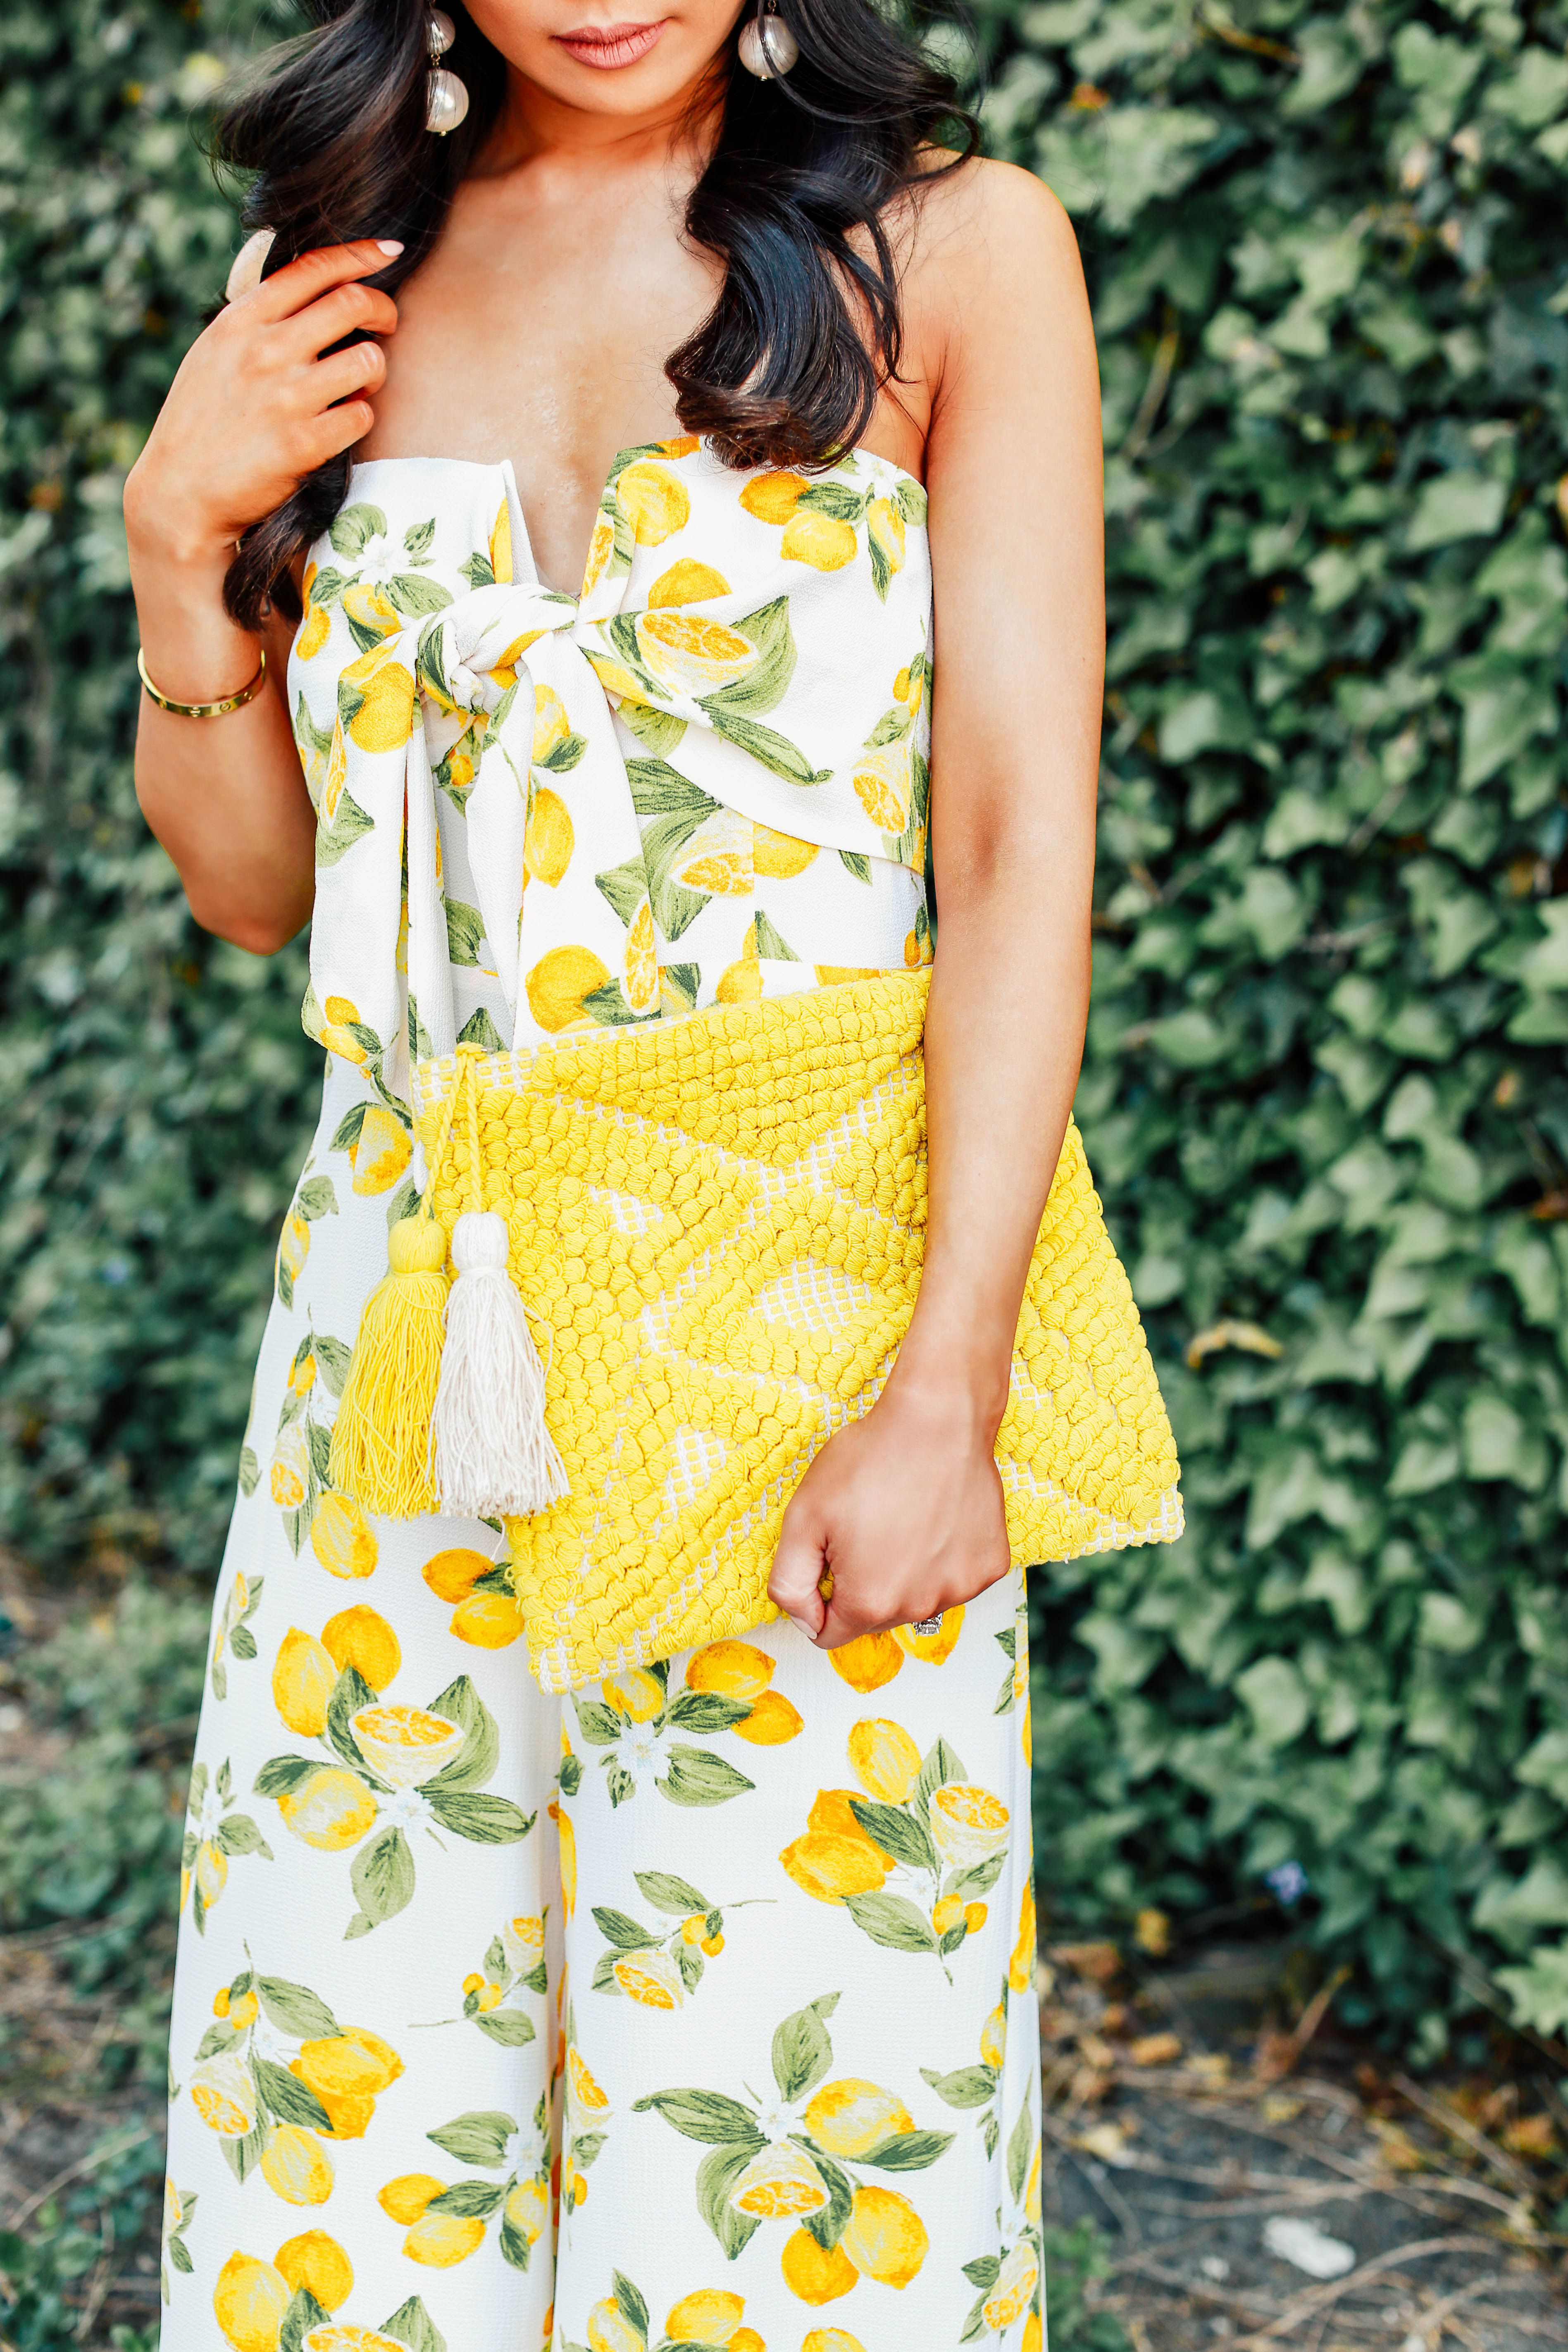 Lemon Print Jumpsuit Perfect For A Summer Outfit Of The Day Spring Outfits Preppy Wedding Guest Outfit Fall Fashion